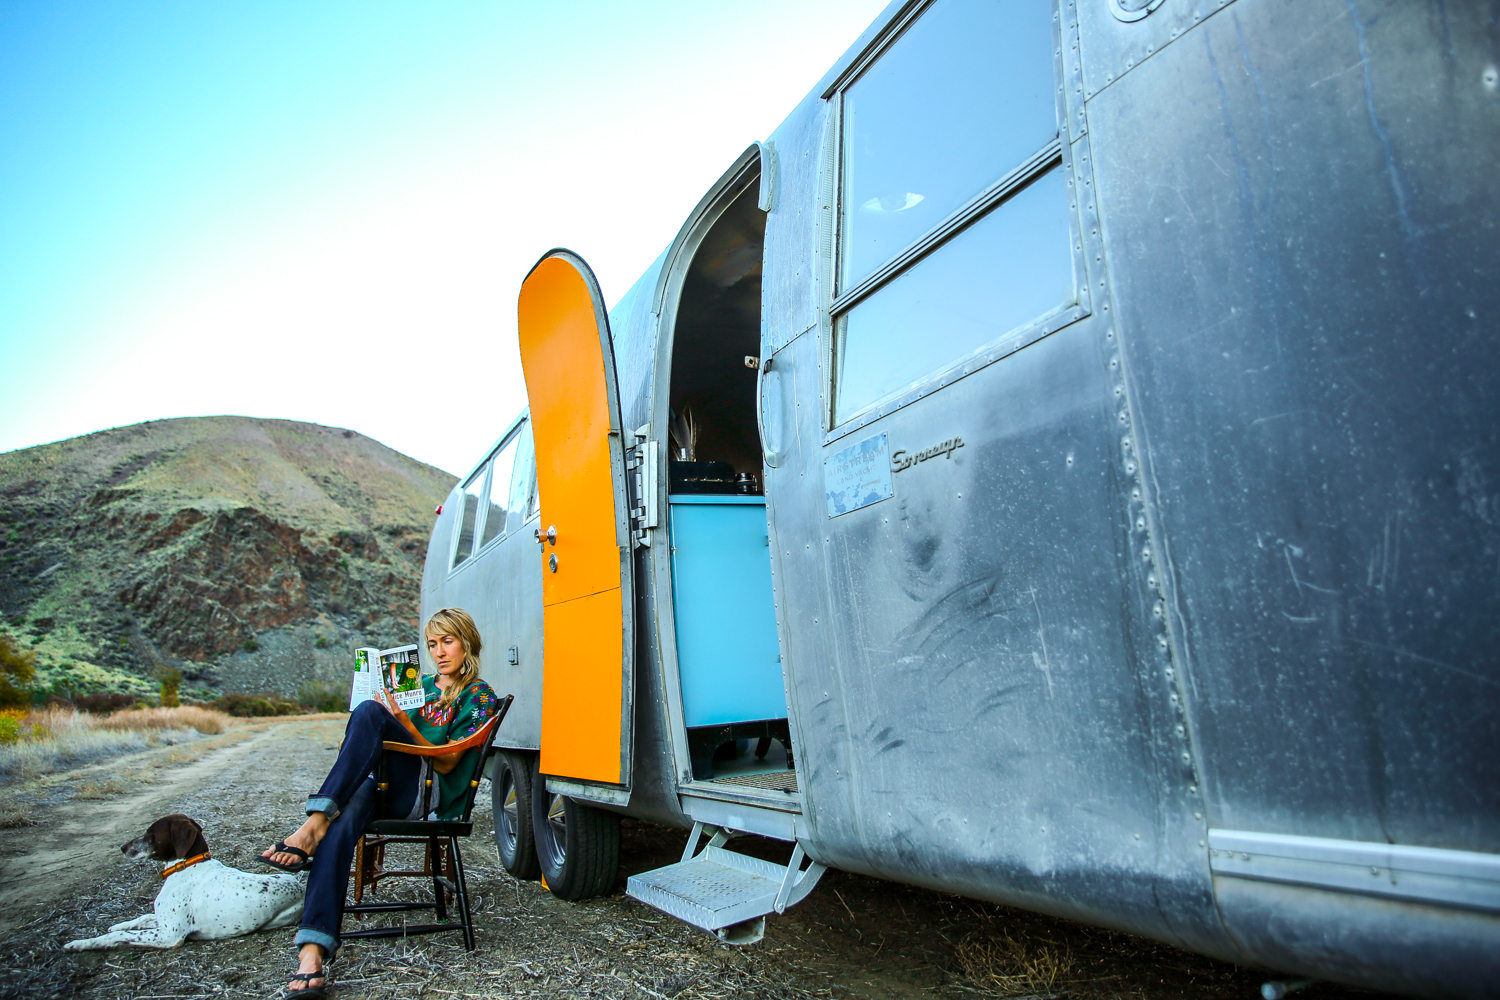 The Noisy Plume, Airstream | The Honest Home Podcast